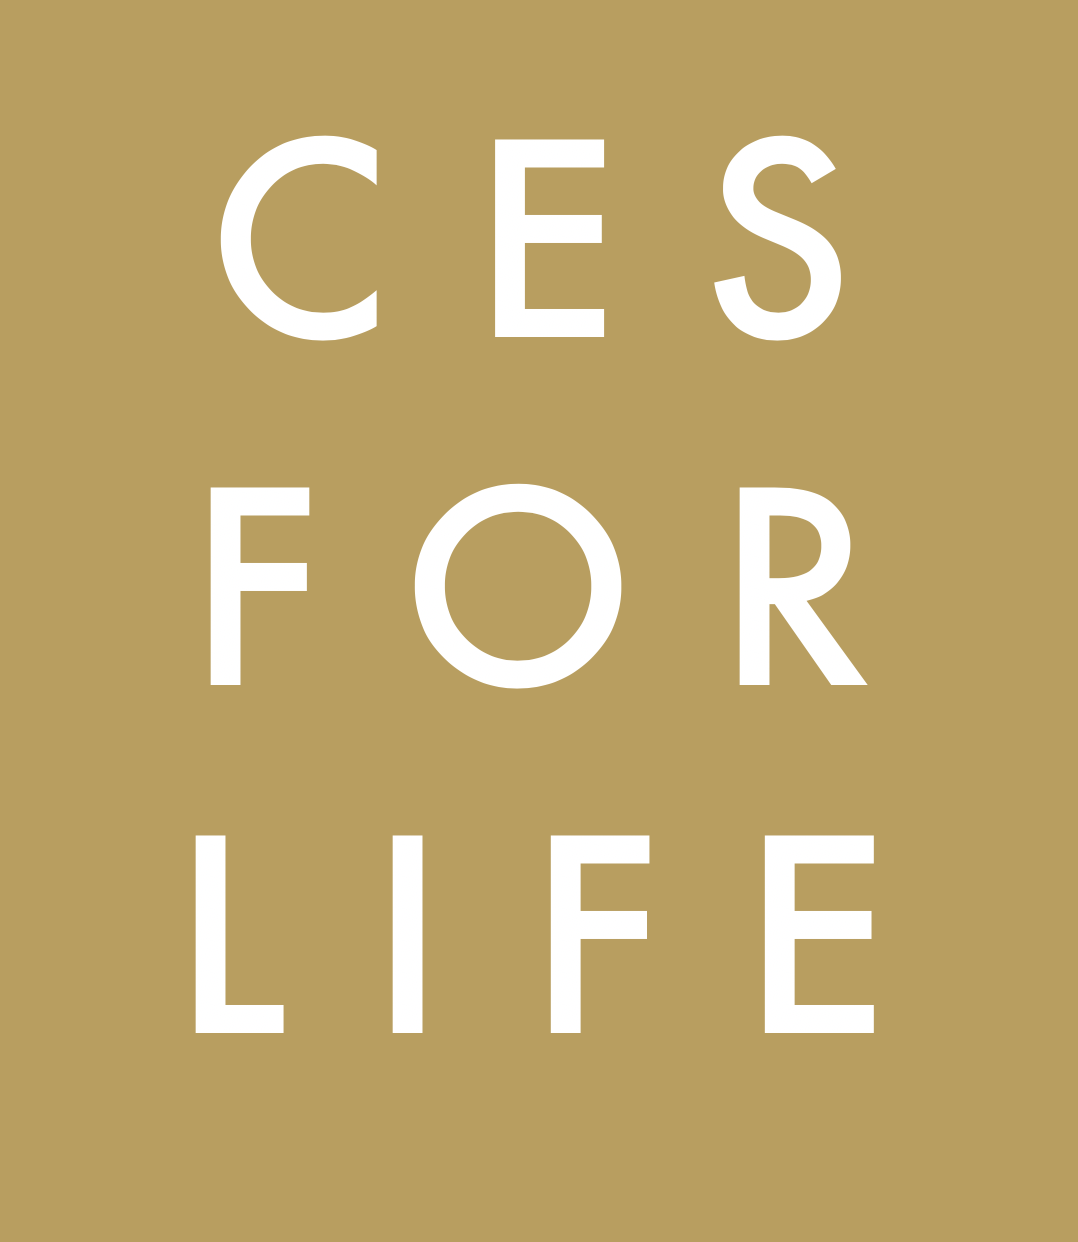 CES FOR LIFE